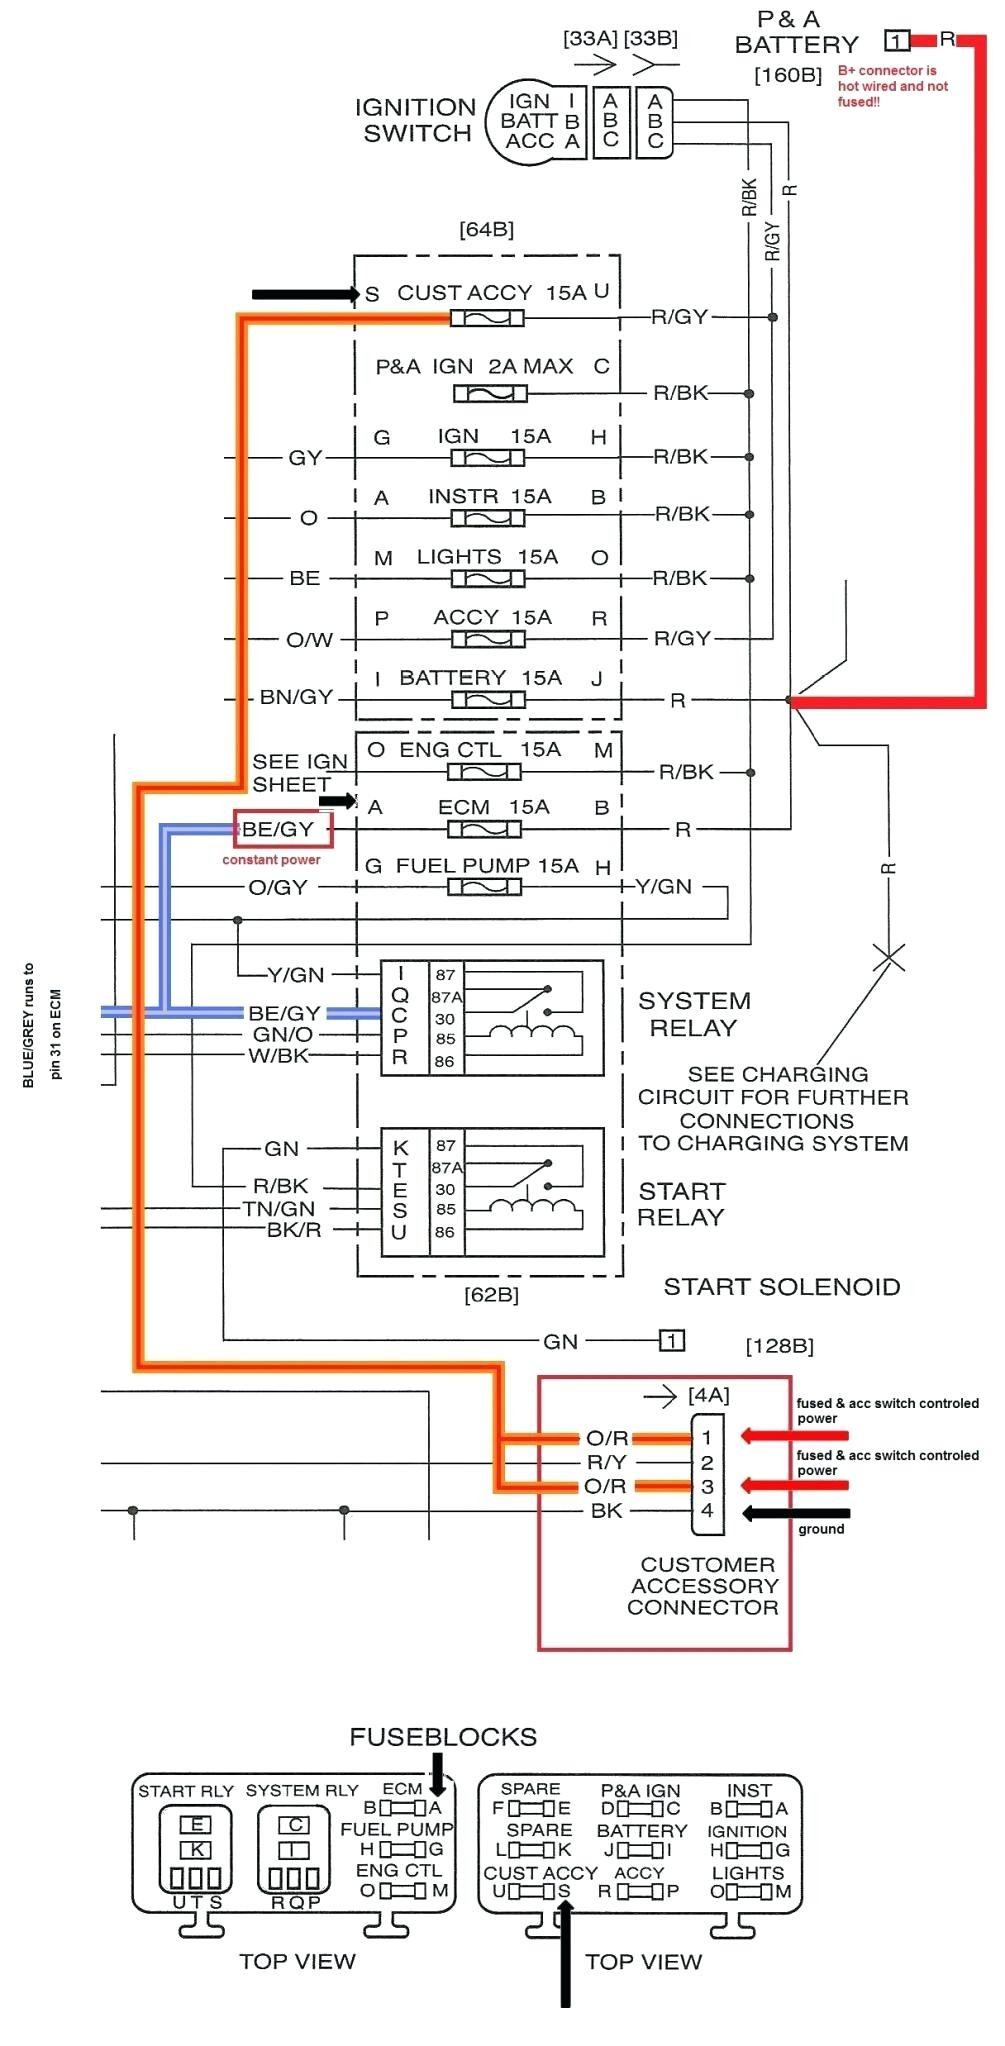 Volvo Vr300 Radio Wiring Diagram